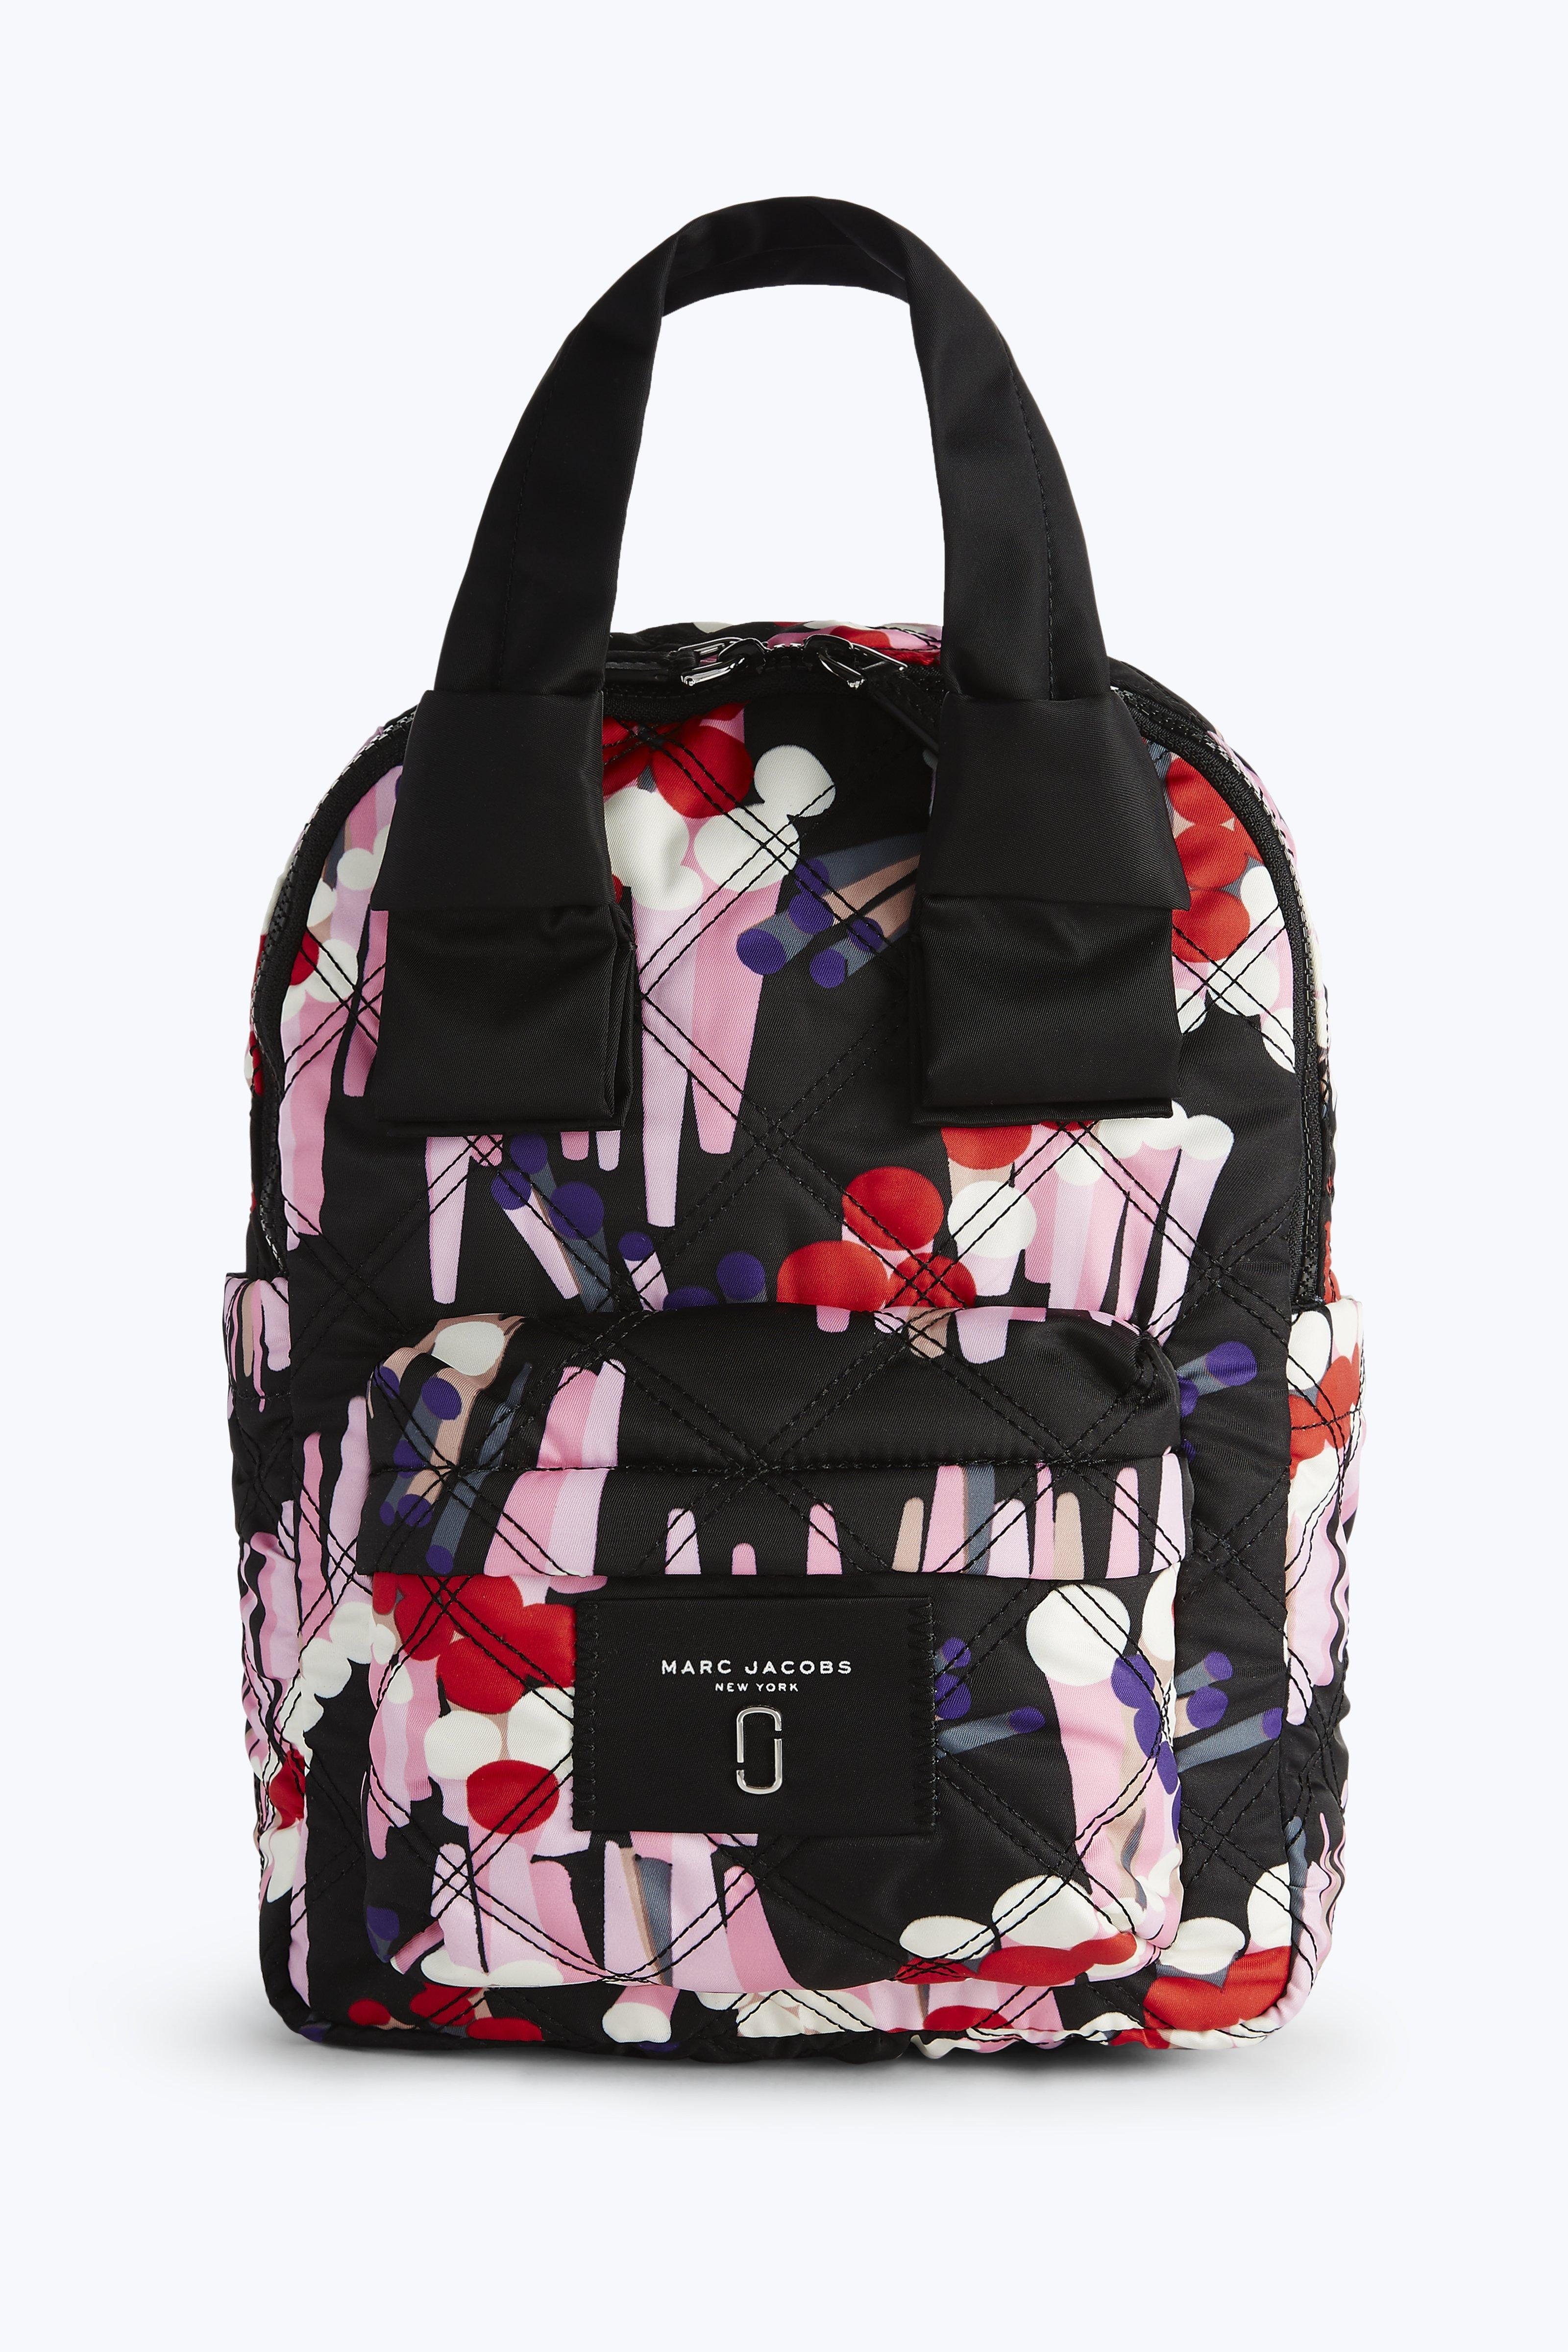 Marc Jacobs Geo Spot Printed Knot Large Backpack In Black Multi